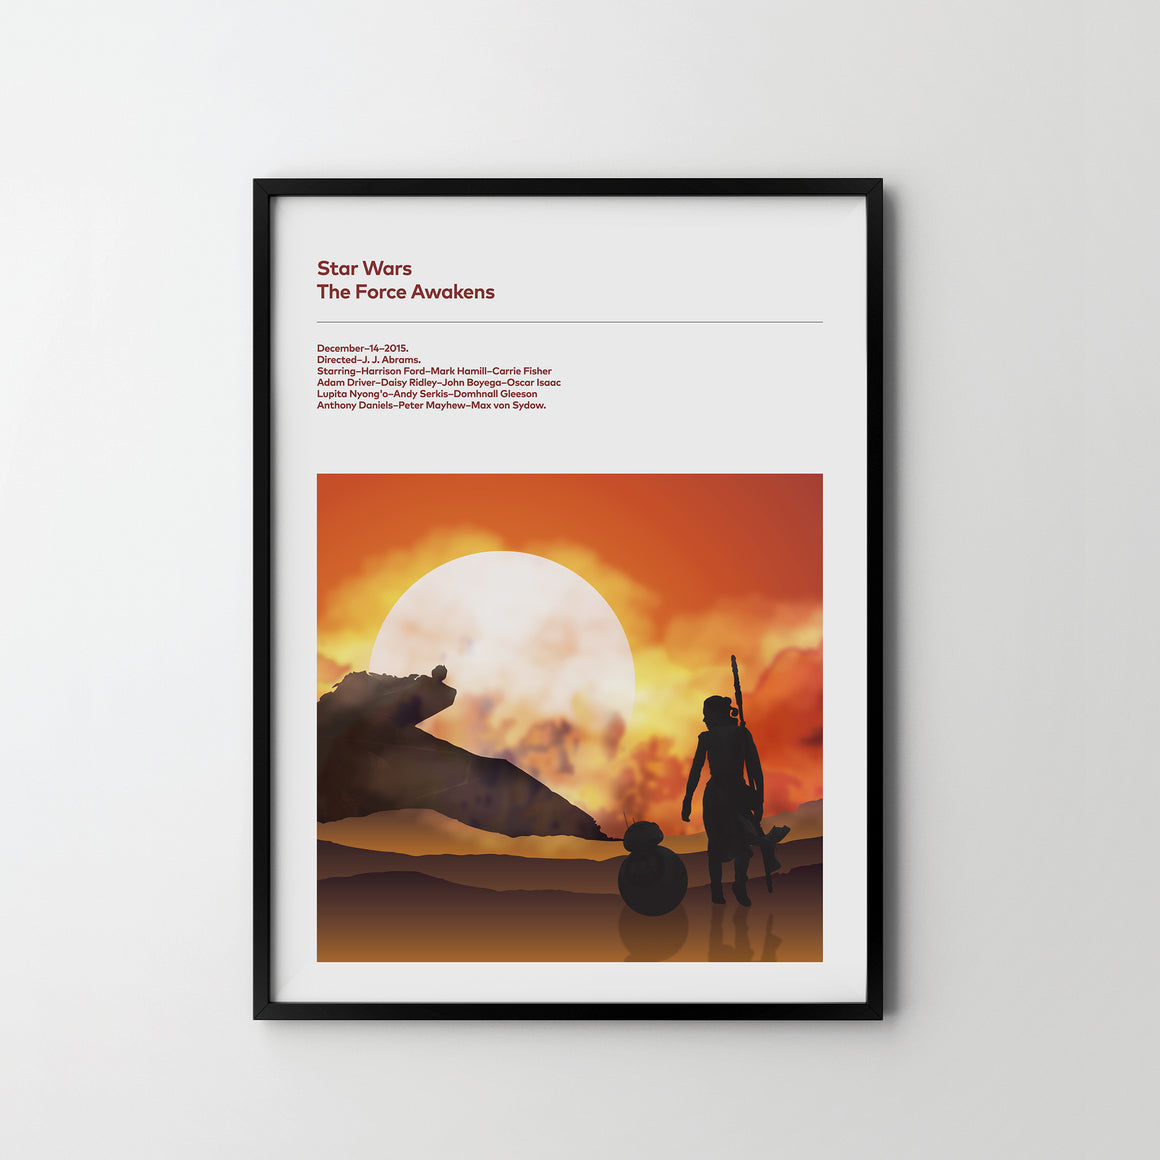 STAR WARS The Force Awakens Poster Art Print, Movie Film Posters, Star Wars - SOA State of Art